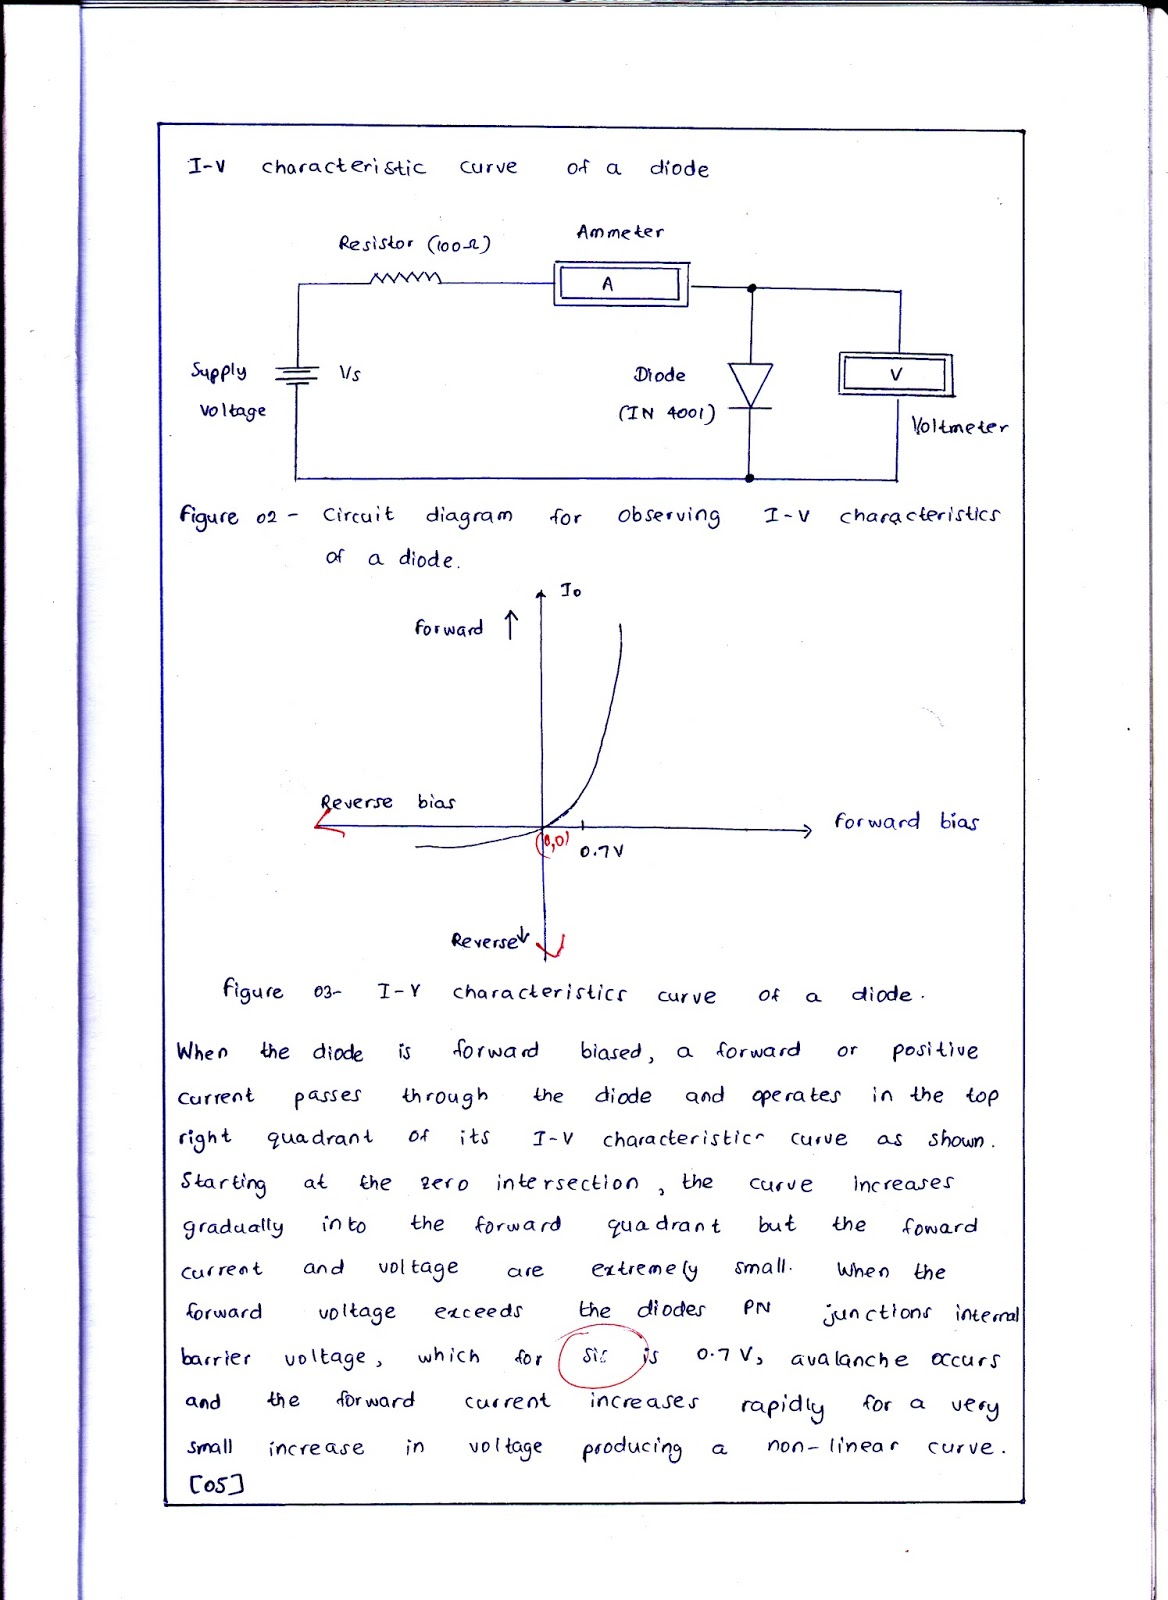 Electronics Practical Reports The Circuits Can Be Used Anywhere A Power Zener Diode Function Would Name Investigation Of And Characteristics Using Electronic Workbench Software